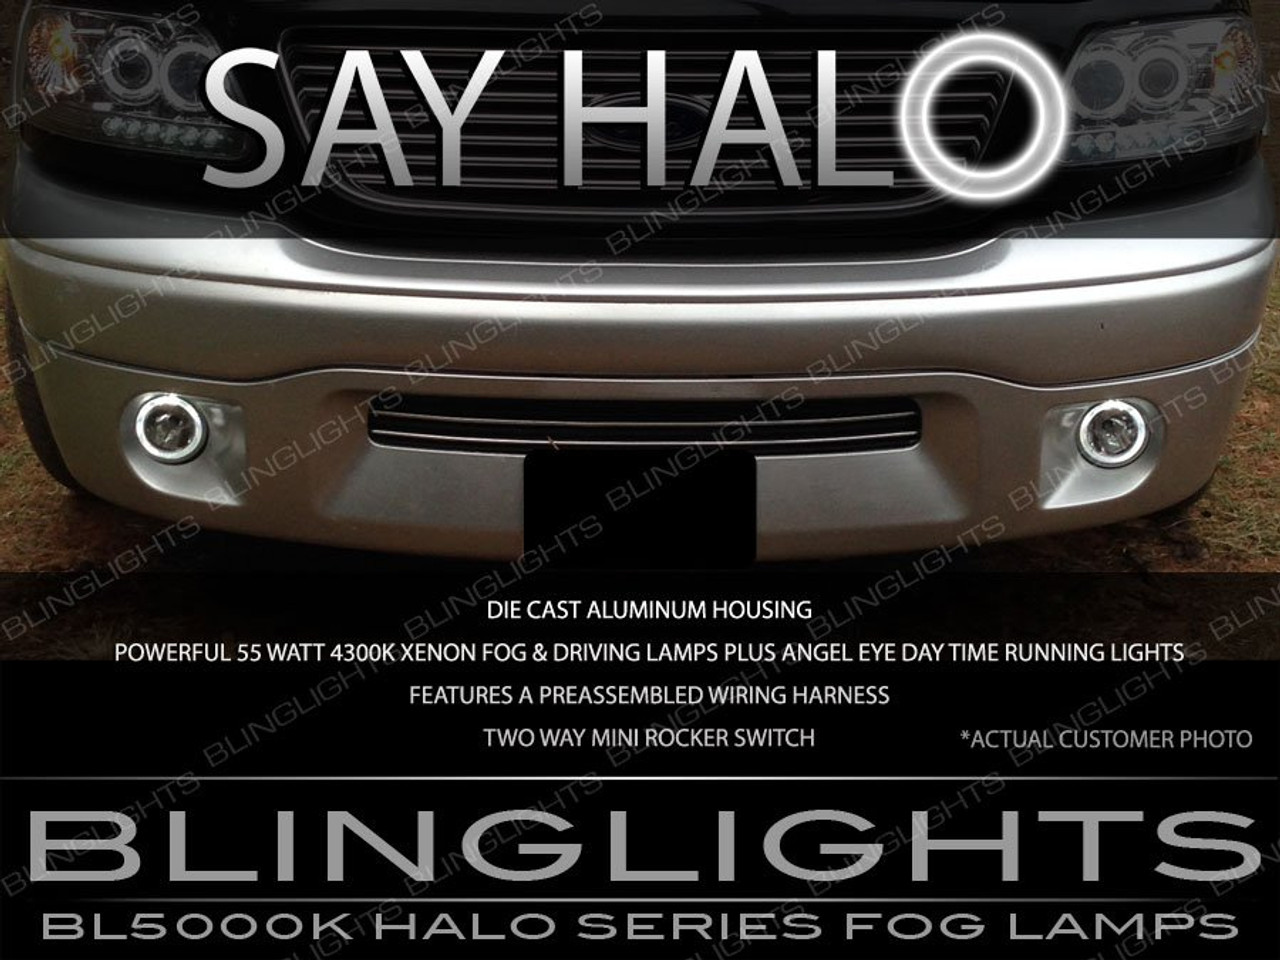 1999-2004 Ford F-150 SVT Lightning Harley Davidson Halo Fog Lamps Driving Lights